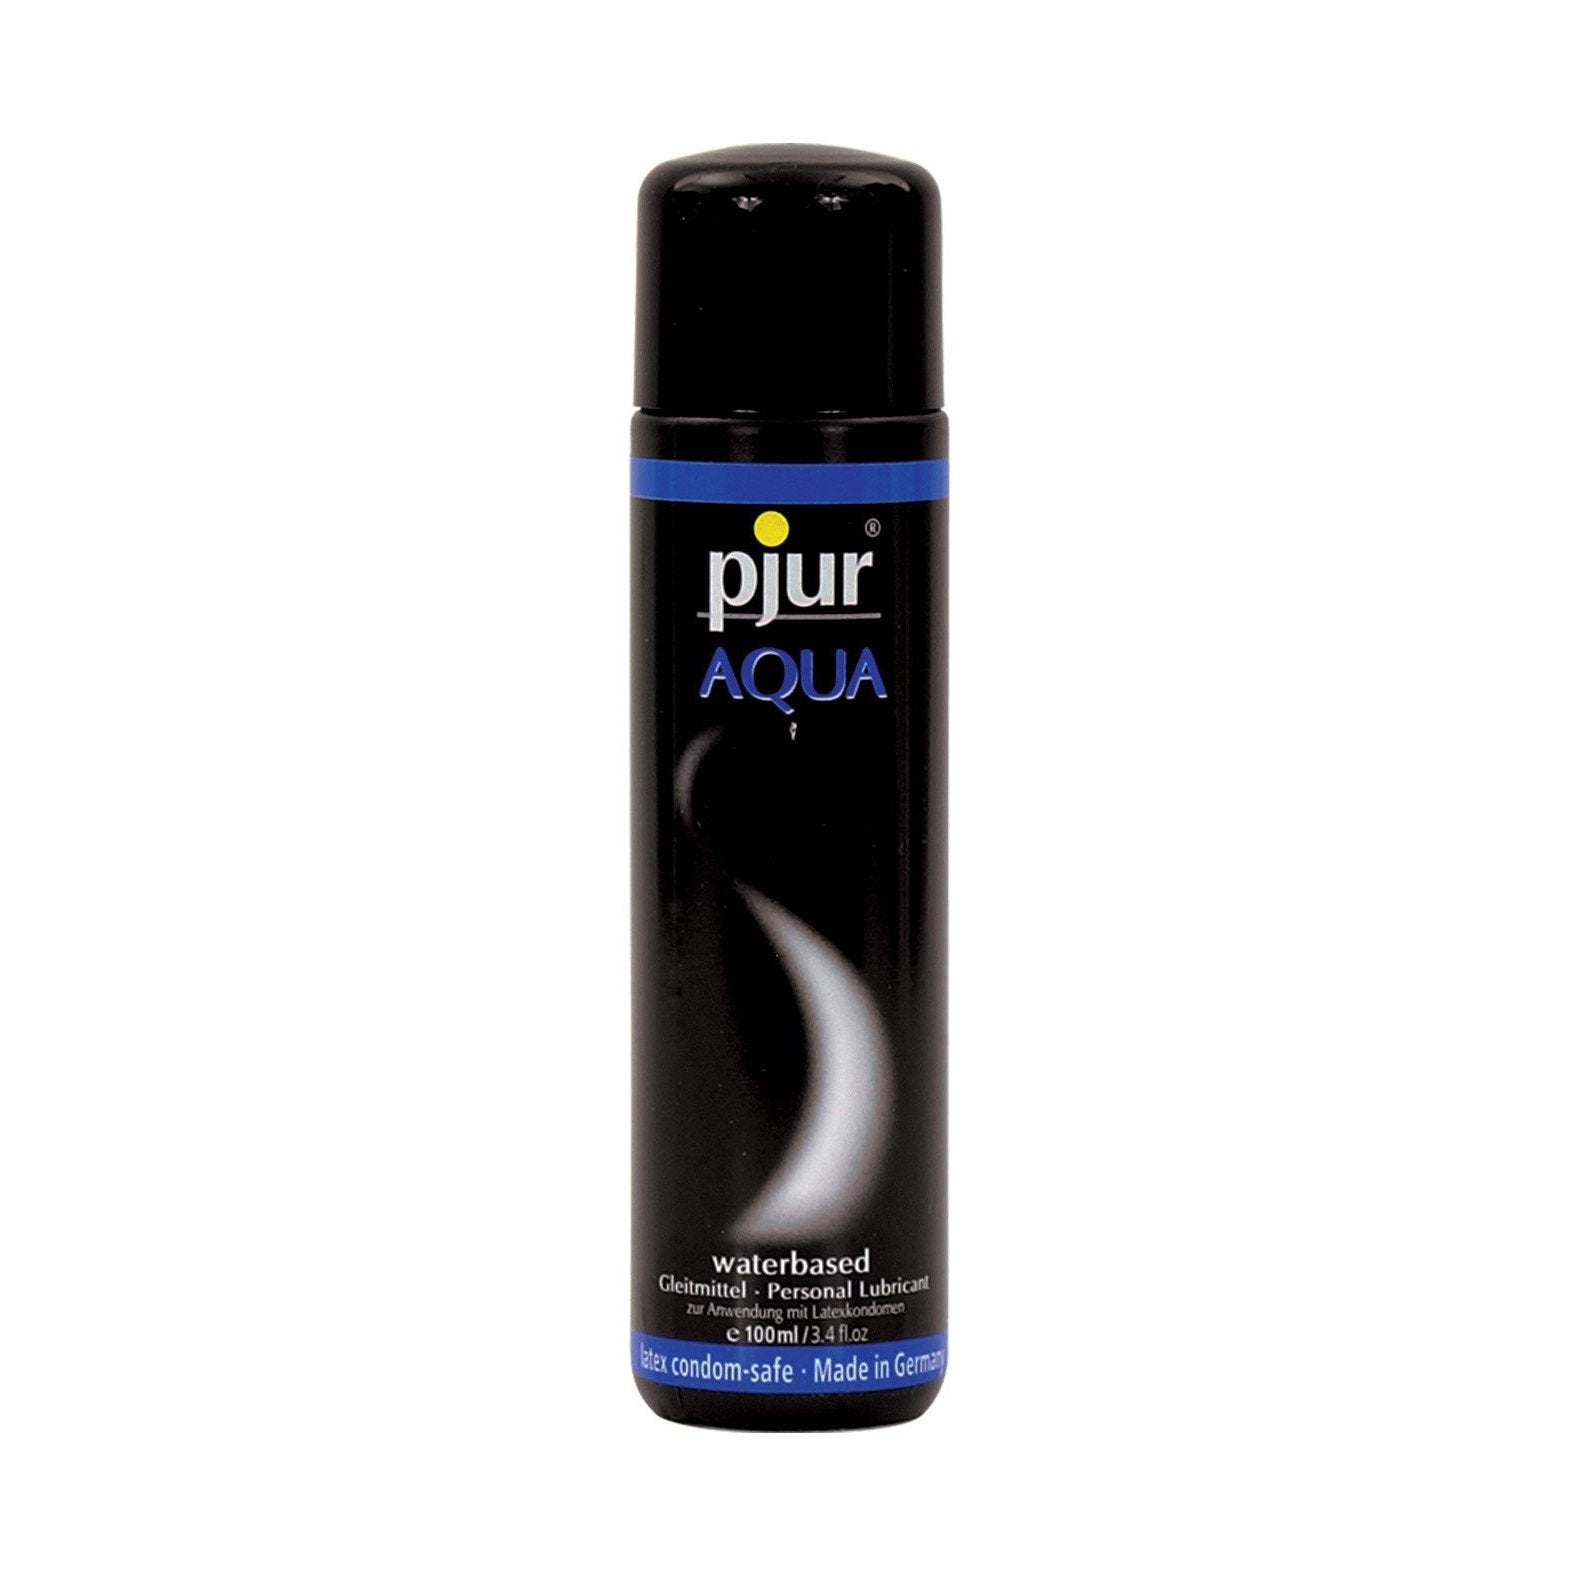 Pjur Aqua Personal Lubricant - Gay Men's Sex Toys - Adam's Toy Box